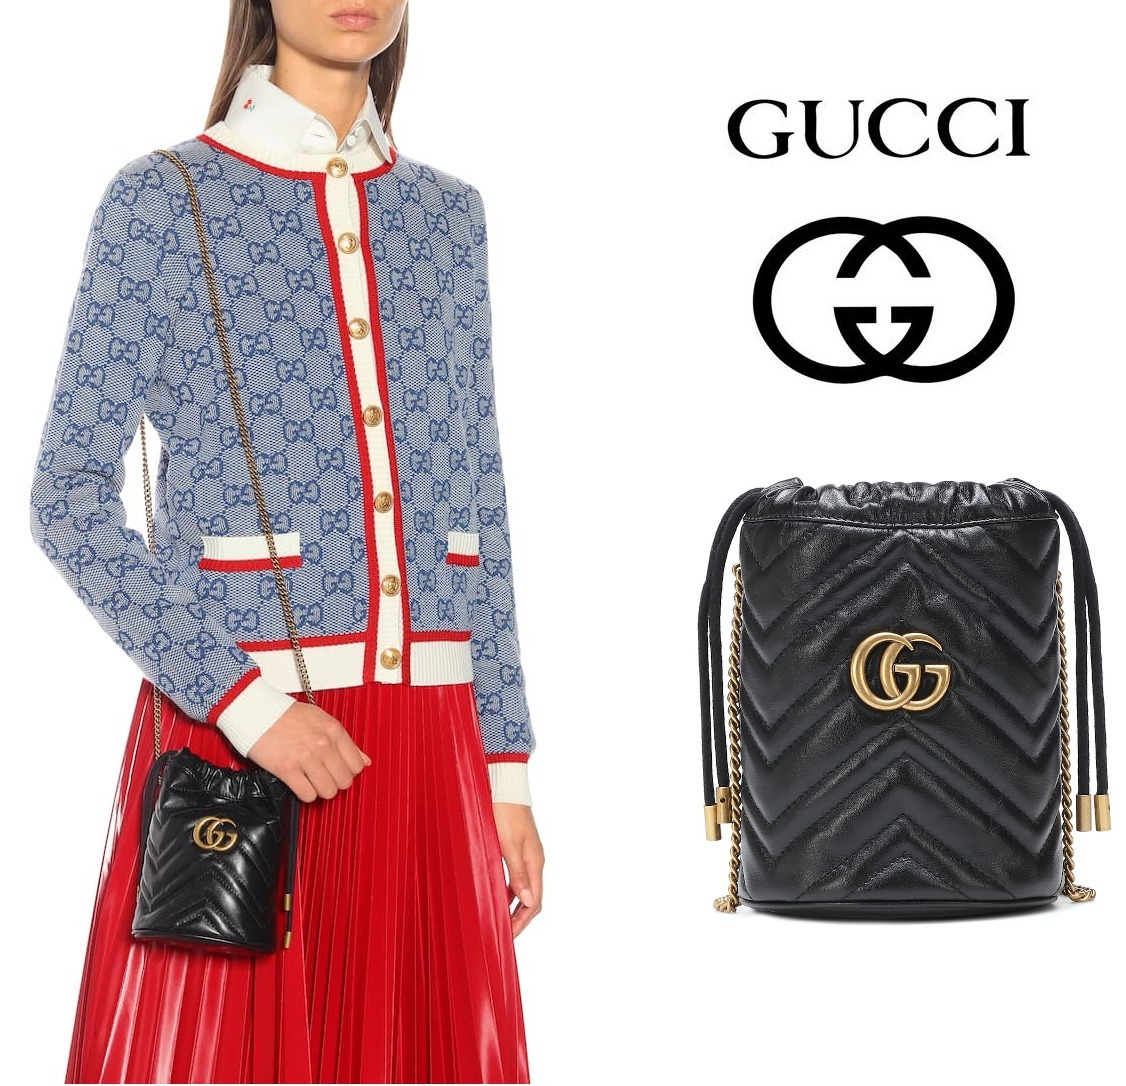 [GUCCI] GG Marmont Mini leather bucket ミニ レザーバケット (GUCCI/ショルダーバッグ・ポシェット) 69978547